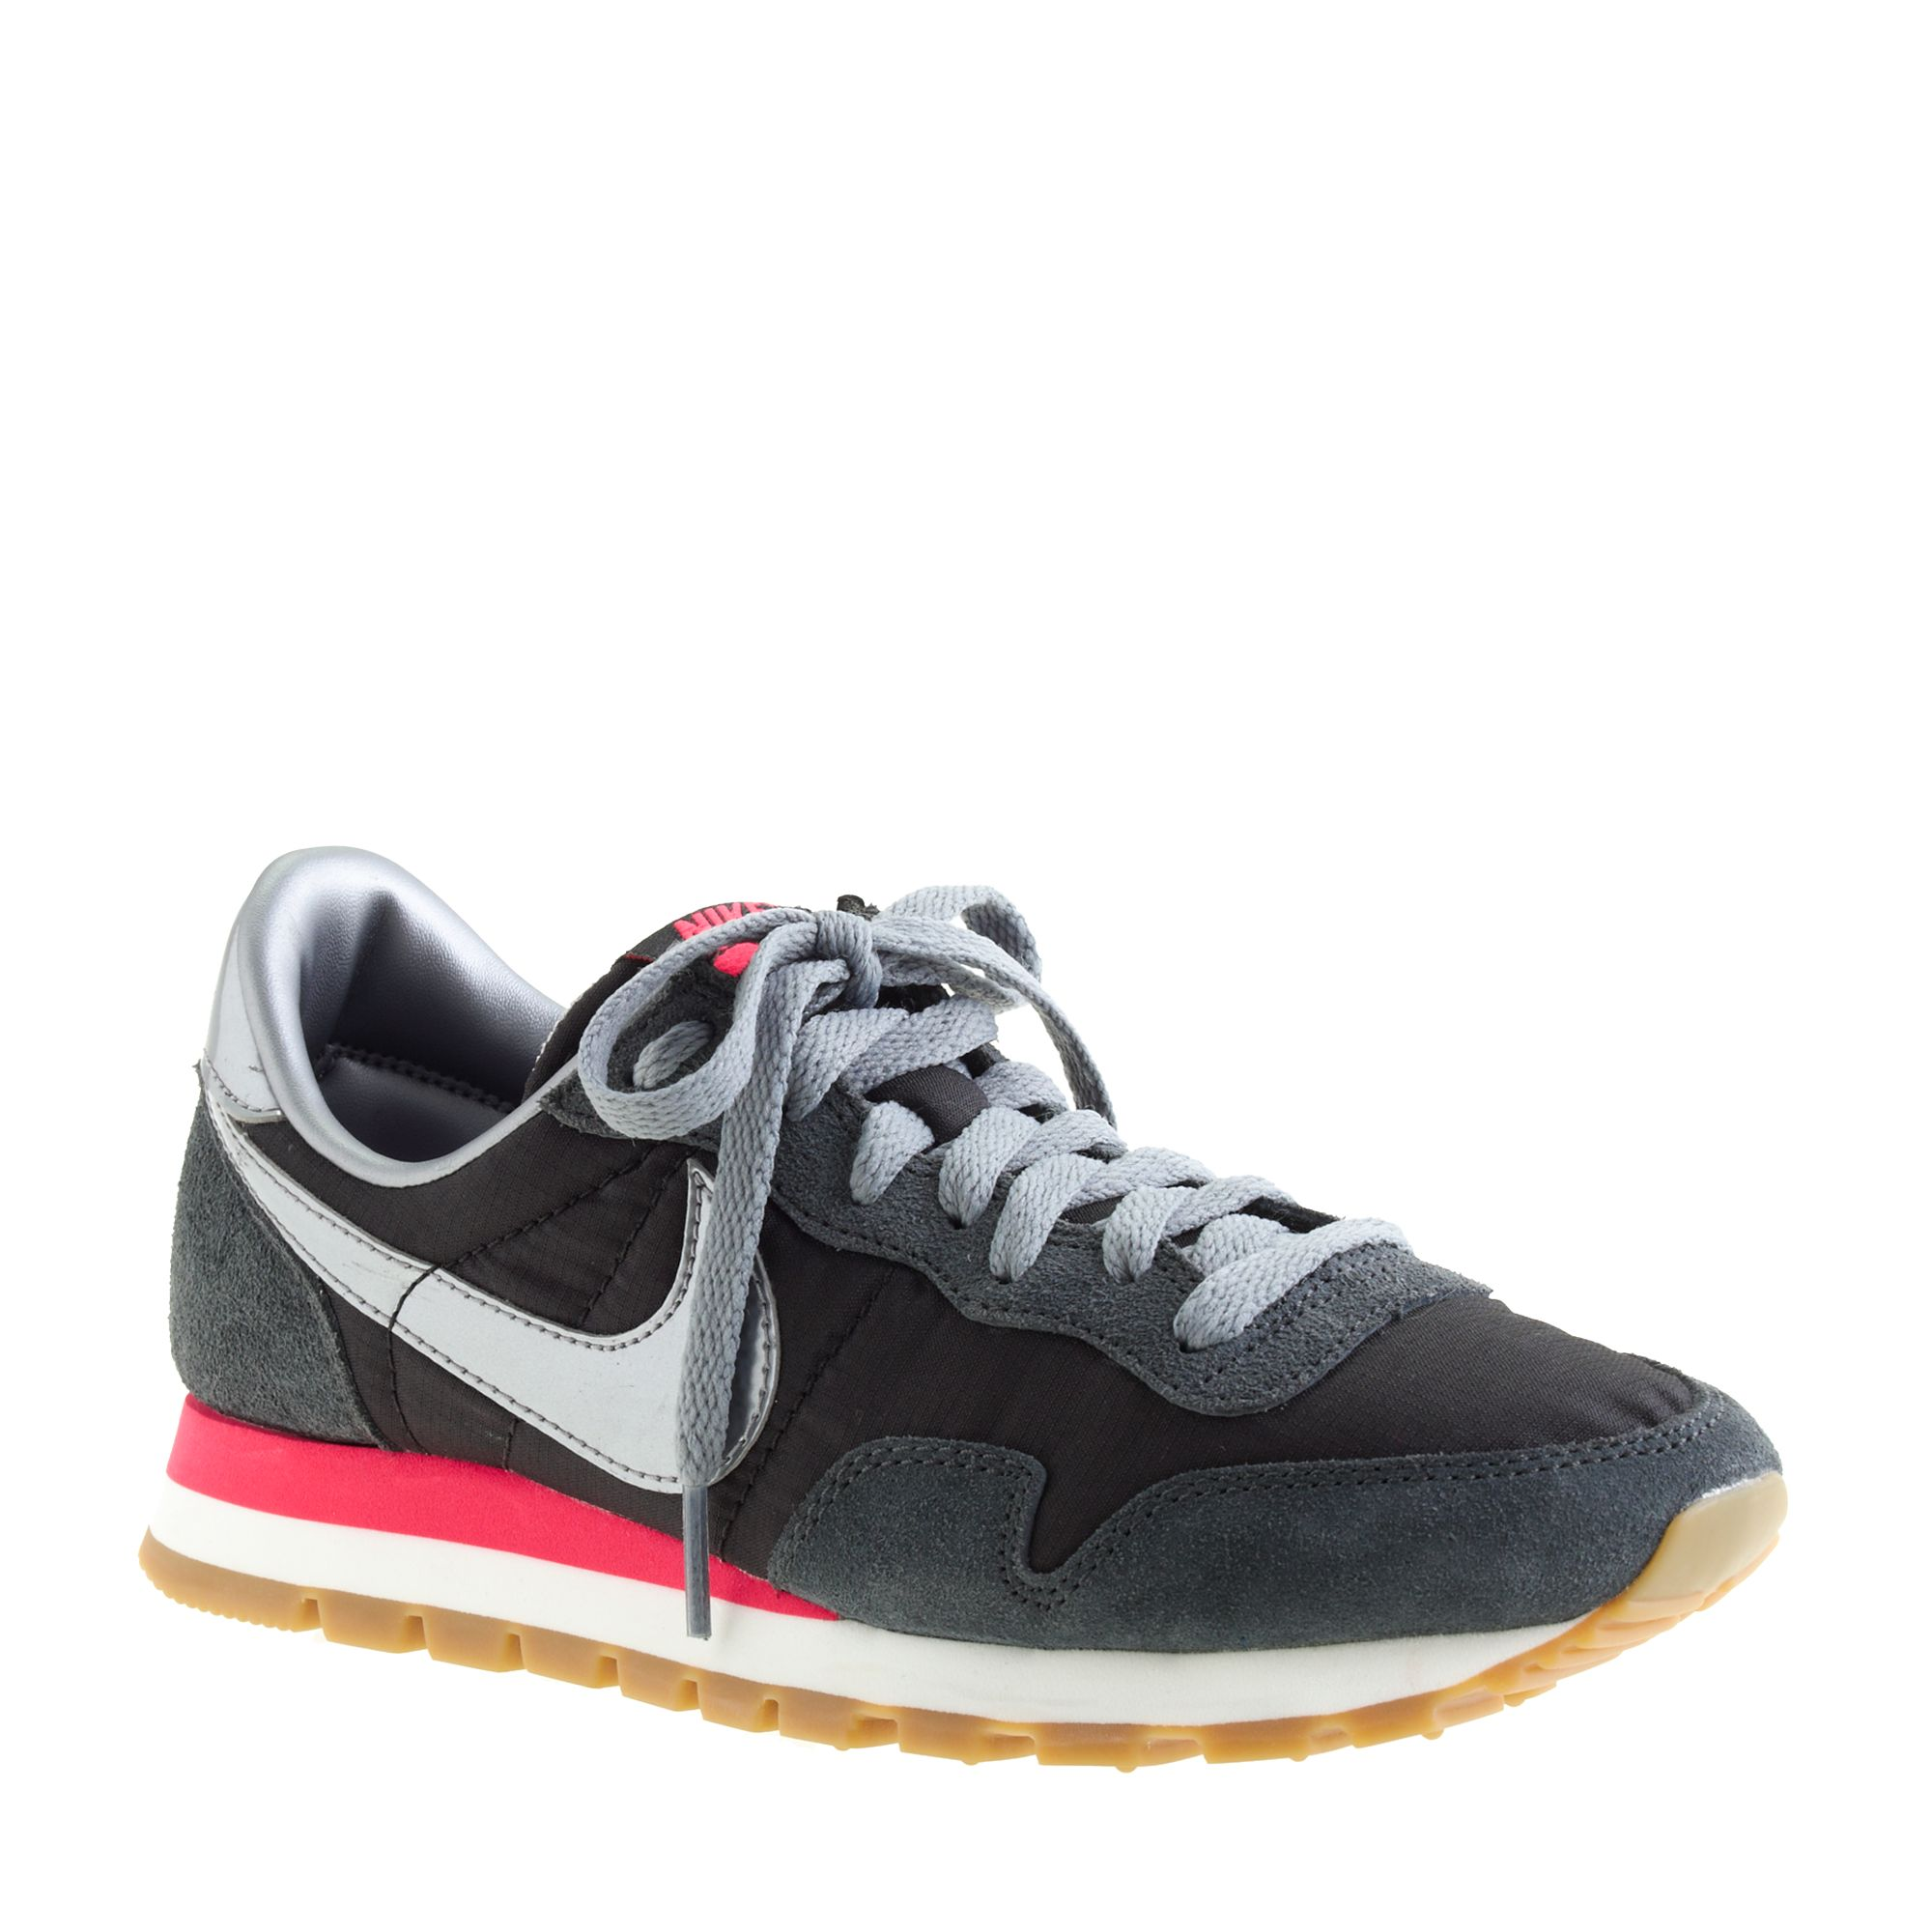 4fc2397addb2 ... sale lyst j.crew nike vintage collection air pegasus 83 sneakers in  black 37d43 758ab